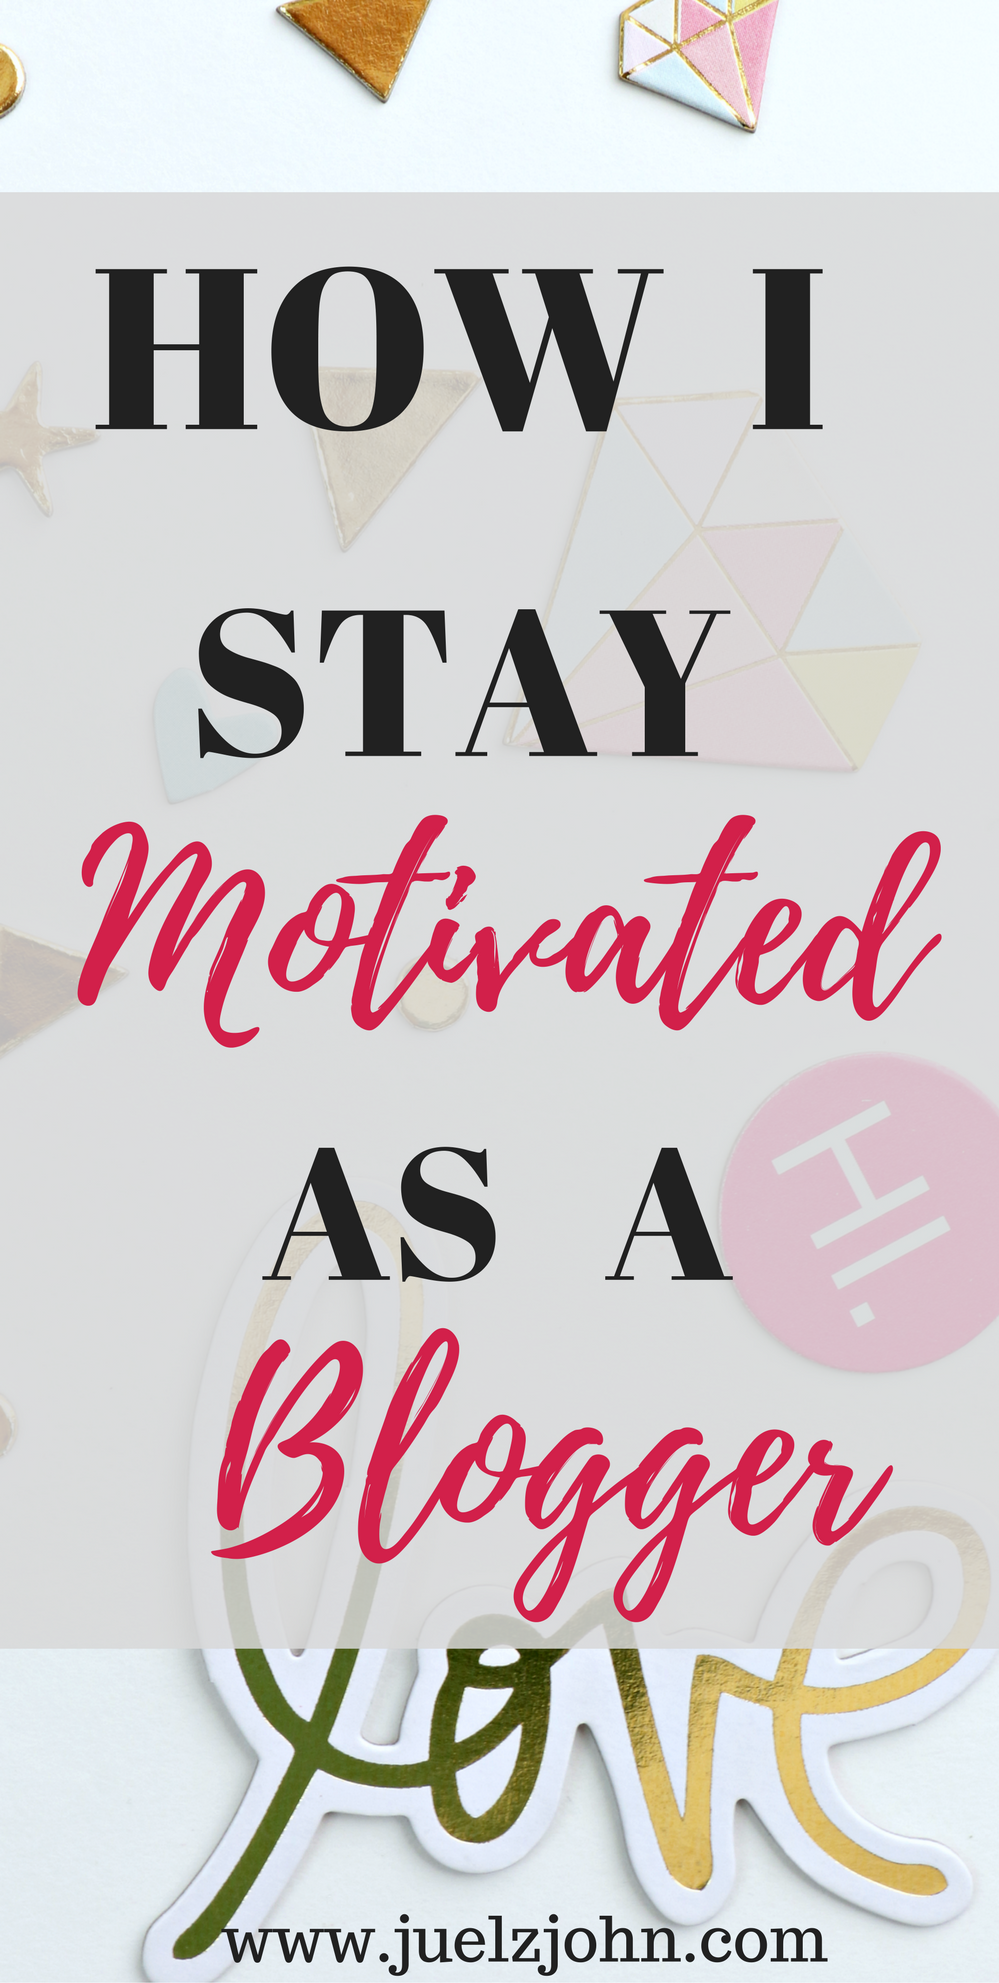 How i stay motivated as a blogger